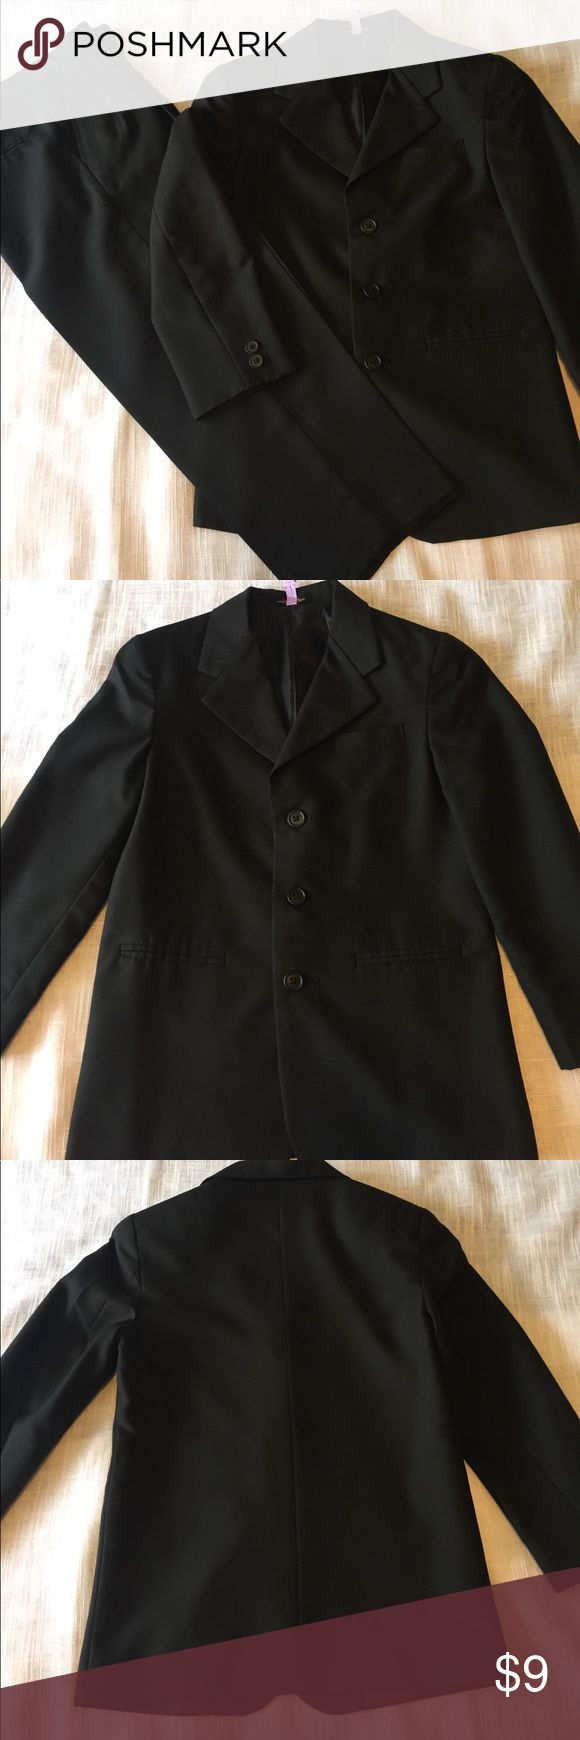 "Boys black Suit Size 10r coat.  Size 8 husky pants.  Black with pleated pant.  Pants have a bit more wear, but are still in great shape.  Waist measures approximately 13.25"".  Inseam measures approximately 20.5"".  From pit to hem of sleeve measures 12.5"".   Top of shoulder from hem is 23"".  Pit to pit when flat measures approximately 16"".  Pet/smoke free home. Matching Sets"